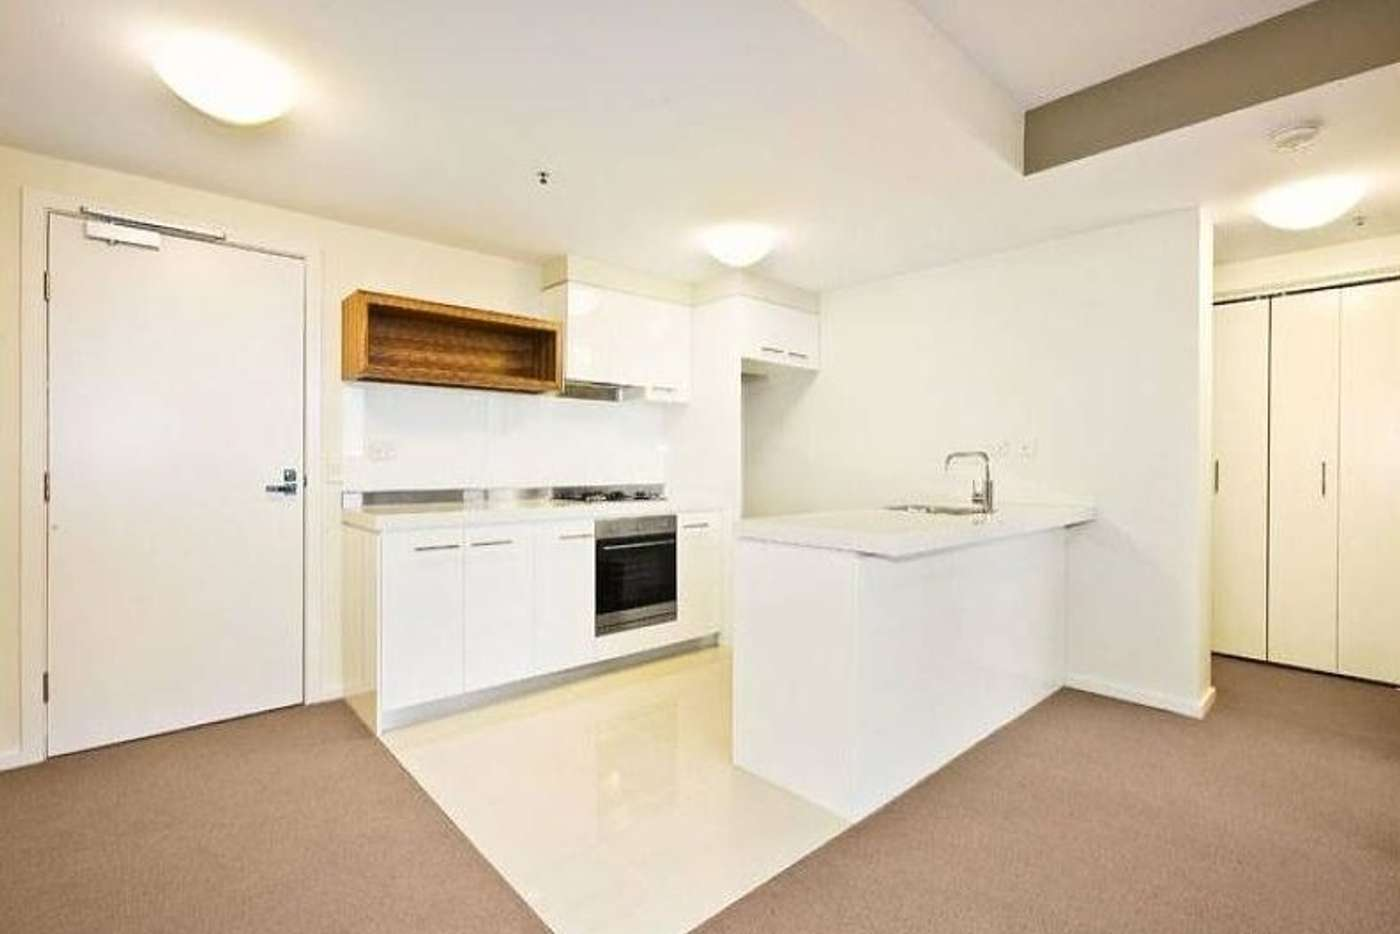 Main view of Homely apartment listing, 506/594 St Kilda Road, Melbourne VIC 3004